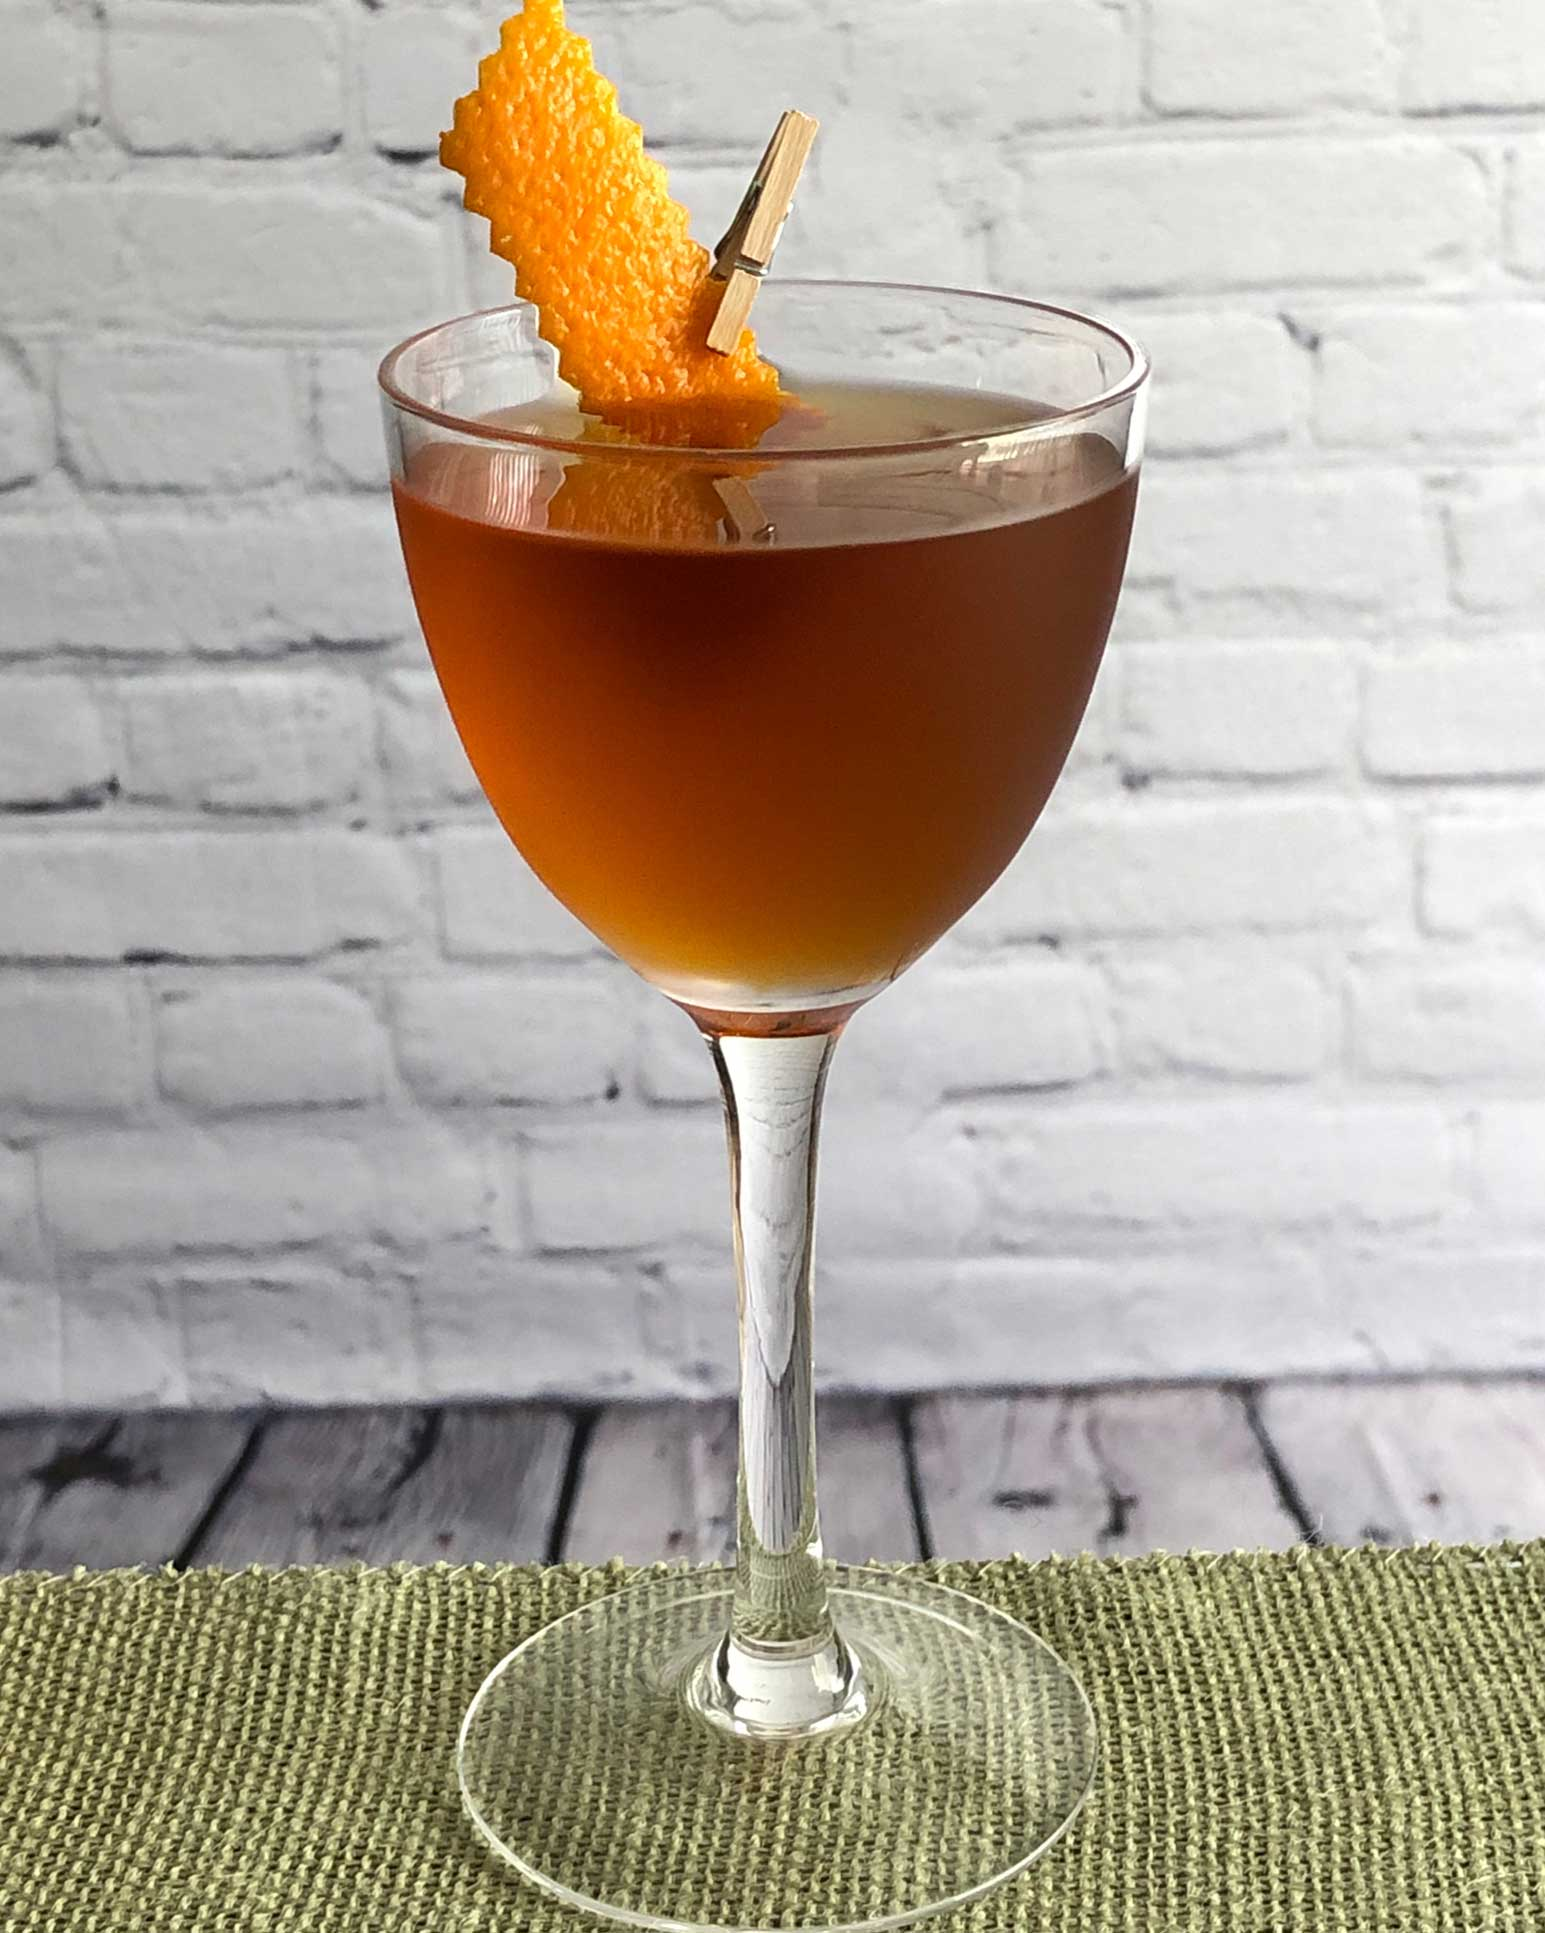 An example of the Hackensack, the mixed drink (cocktail), by based on the Newark, PDT, New York City, featuring apple brandy, Cocchi Vermouth di Torino, maraschino liqueur, and Elisir Novasalus; photo by Lee Edwards